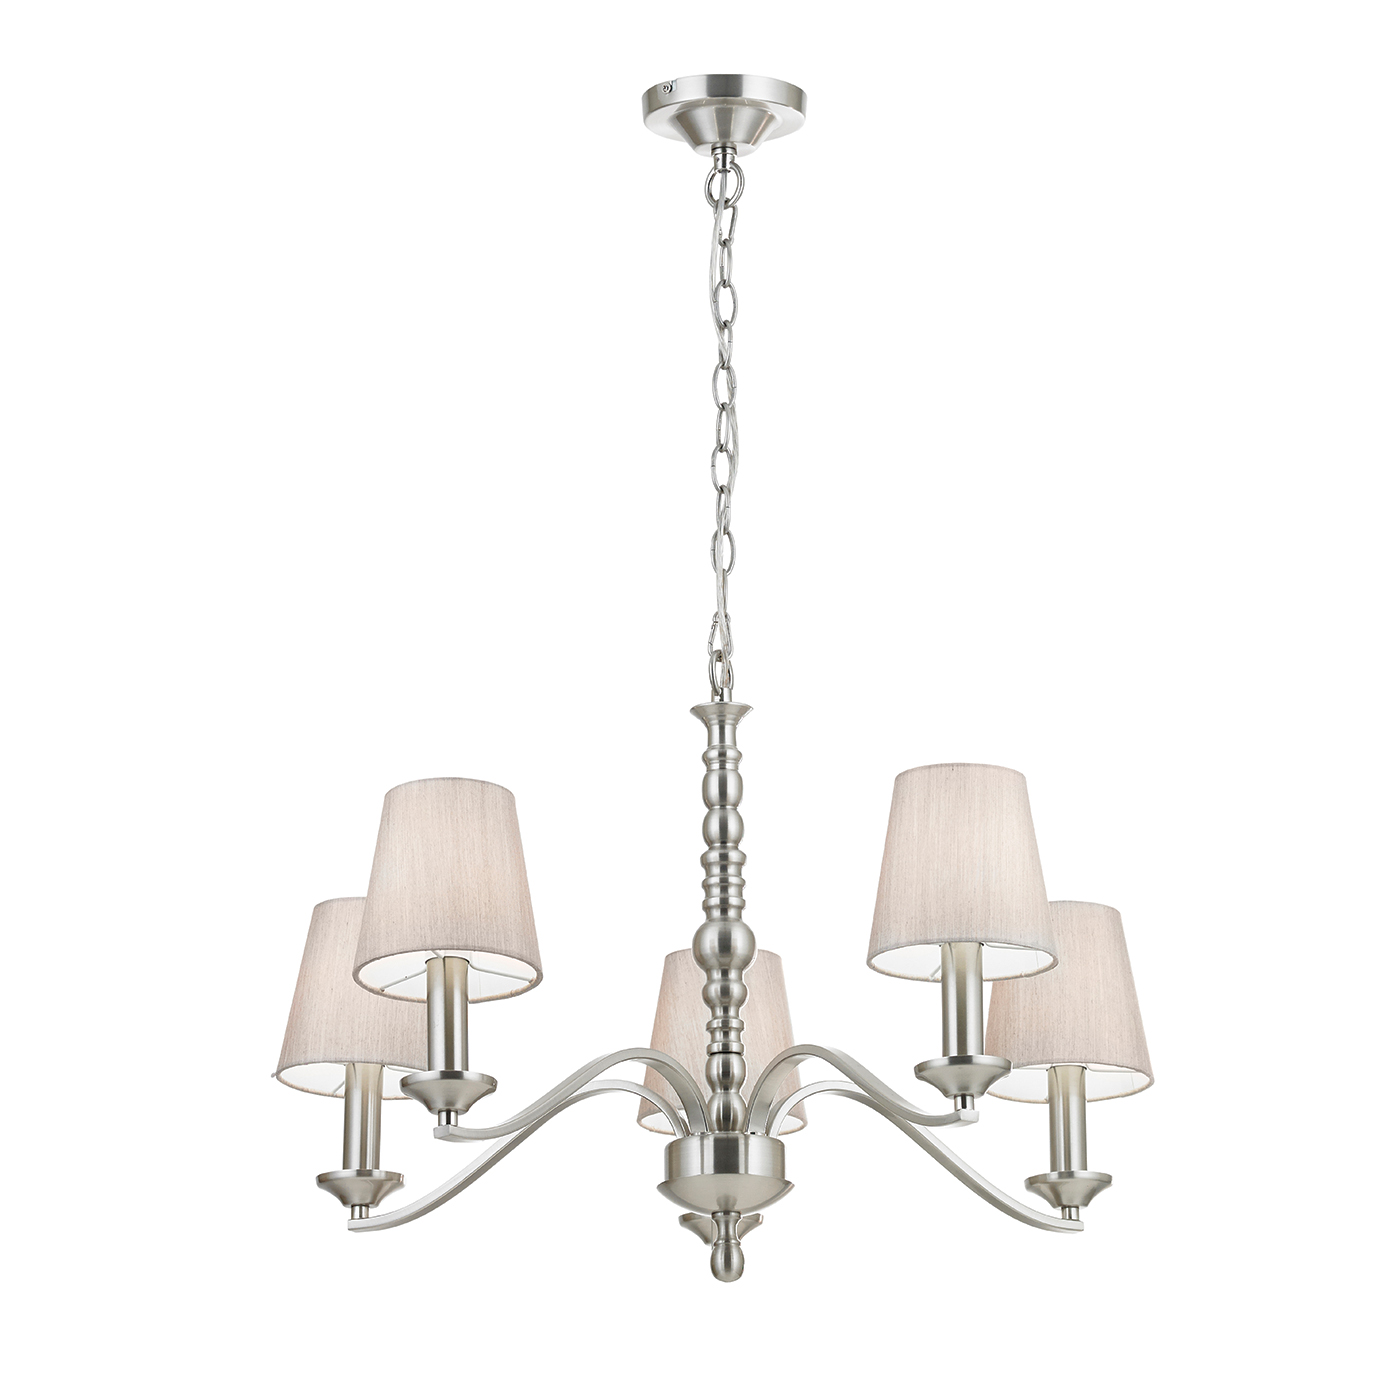 Endon Astaire chandelier 5x 40W Satin nickel effect plate & natural tc fabric Thumbnail 1